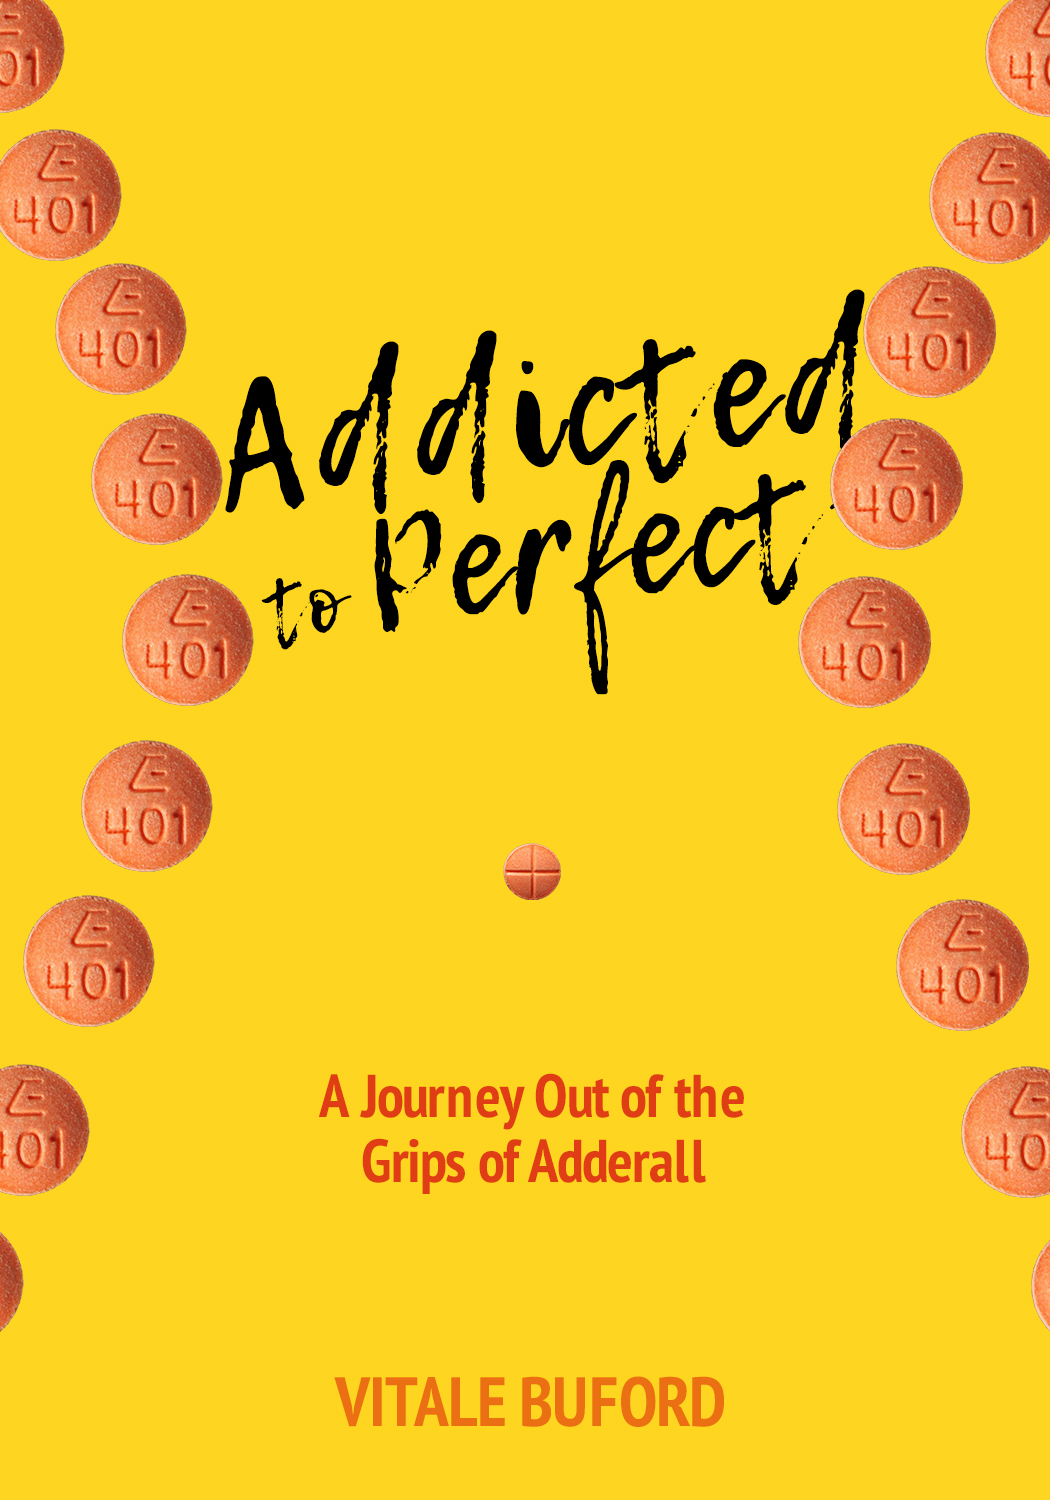 Addicted to Perfect